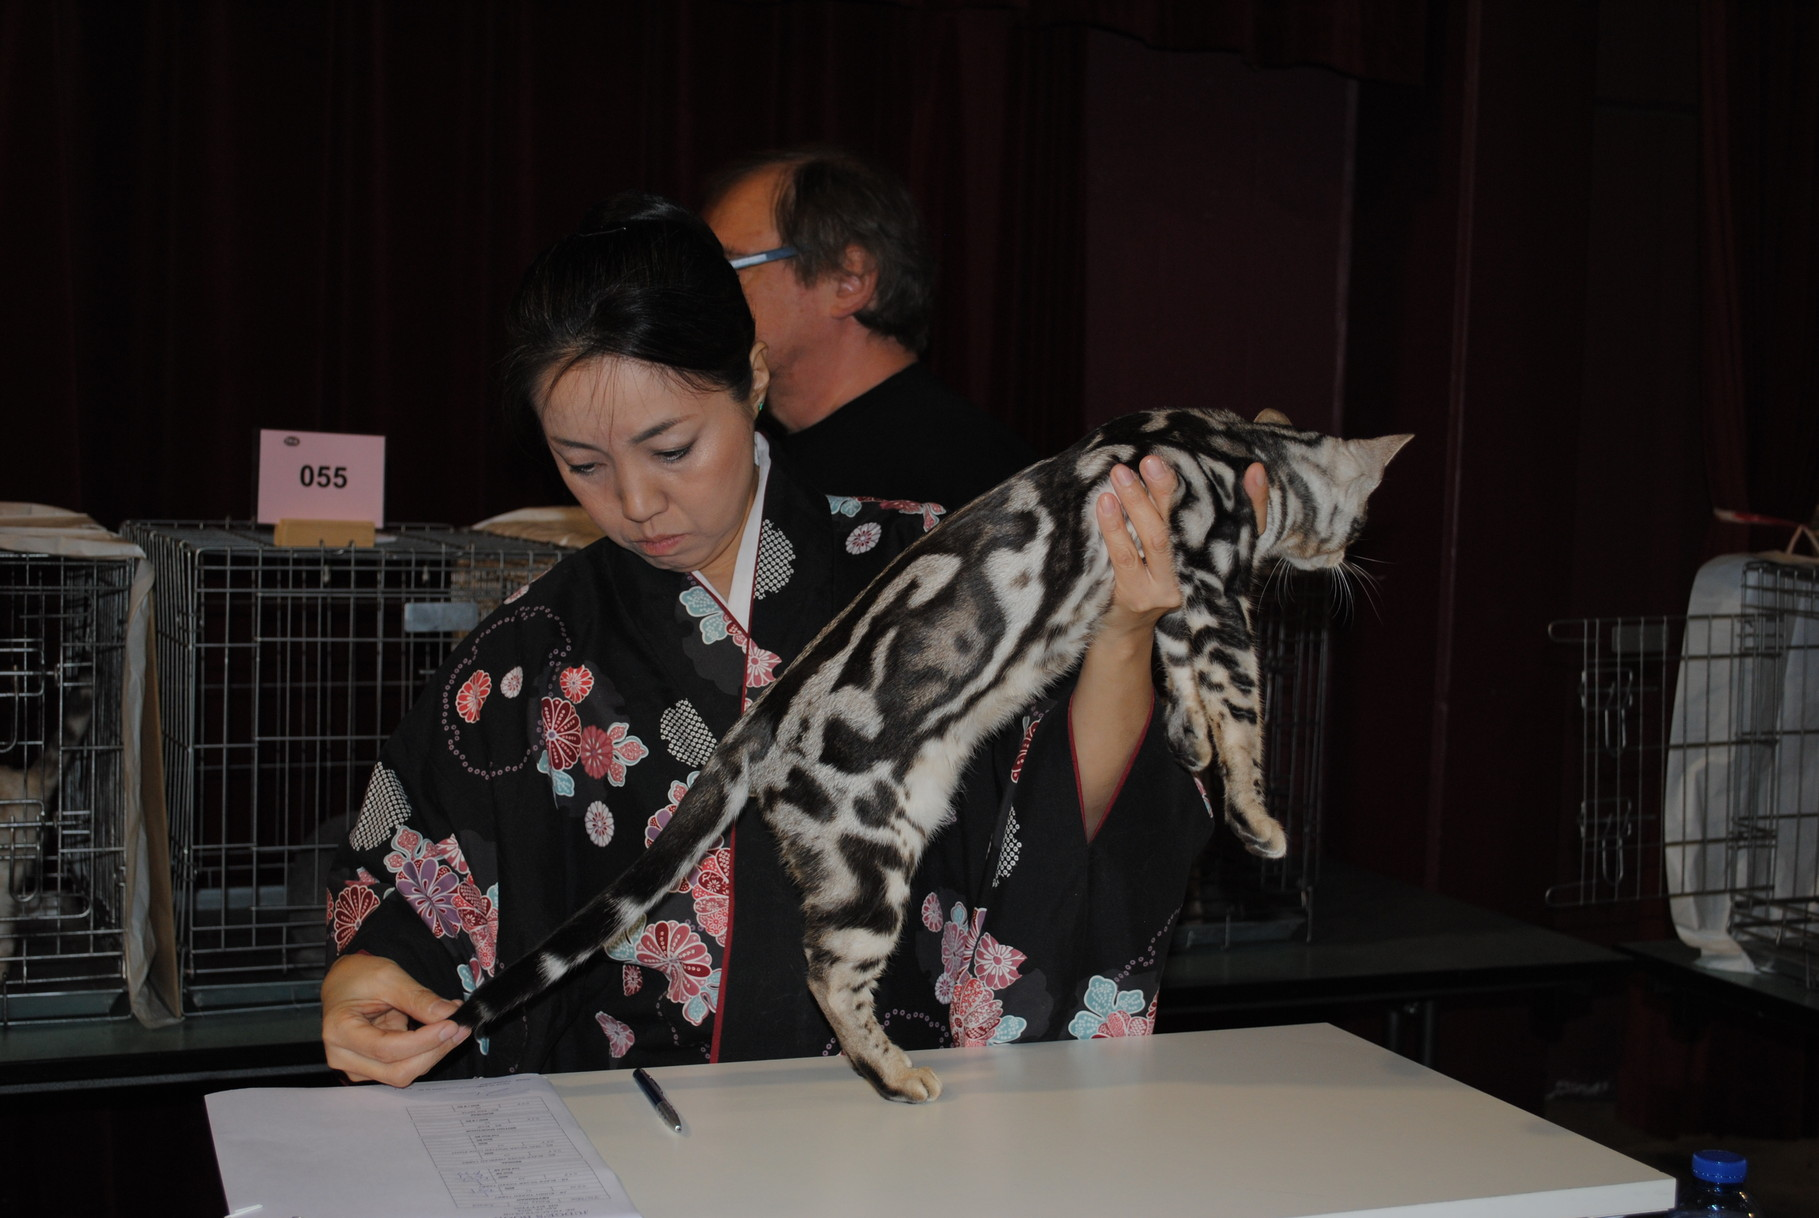 19/04/2014 Colfontaine (TICA ring 3) Fist in Colour - First in Devision - Second Best of Breed